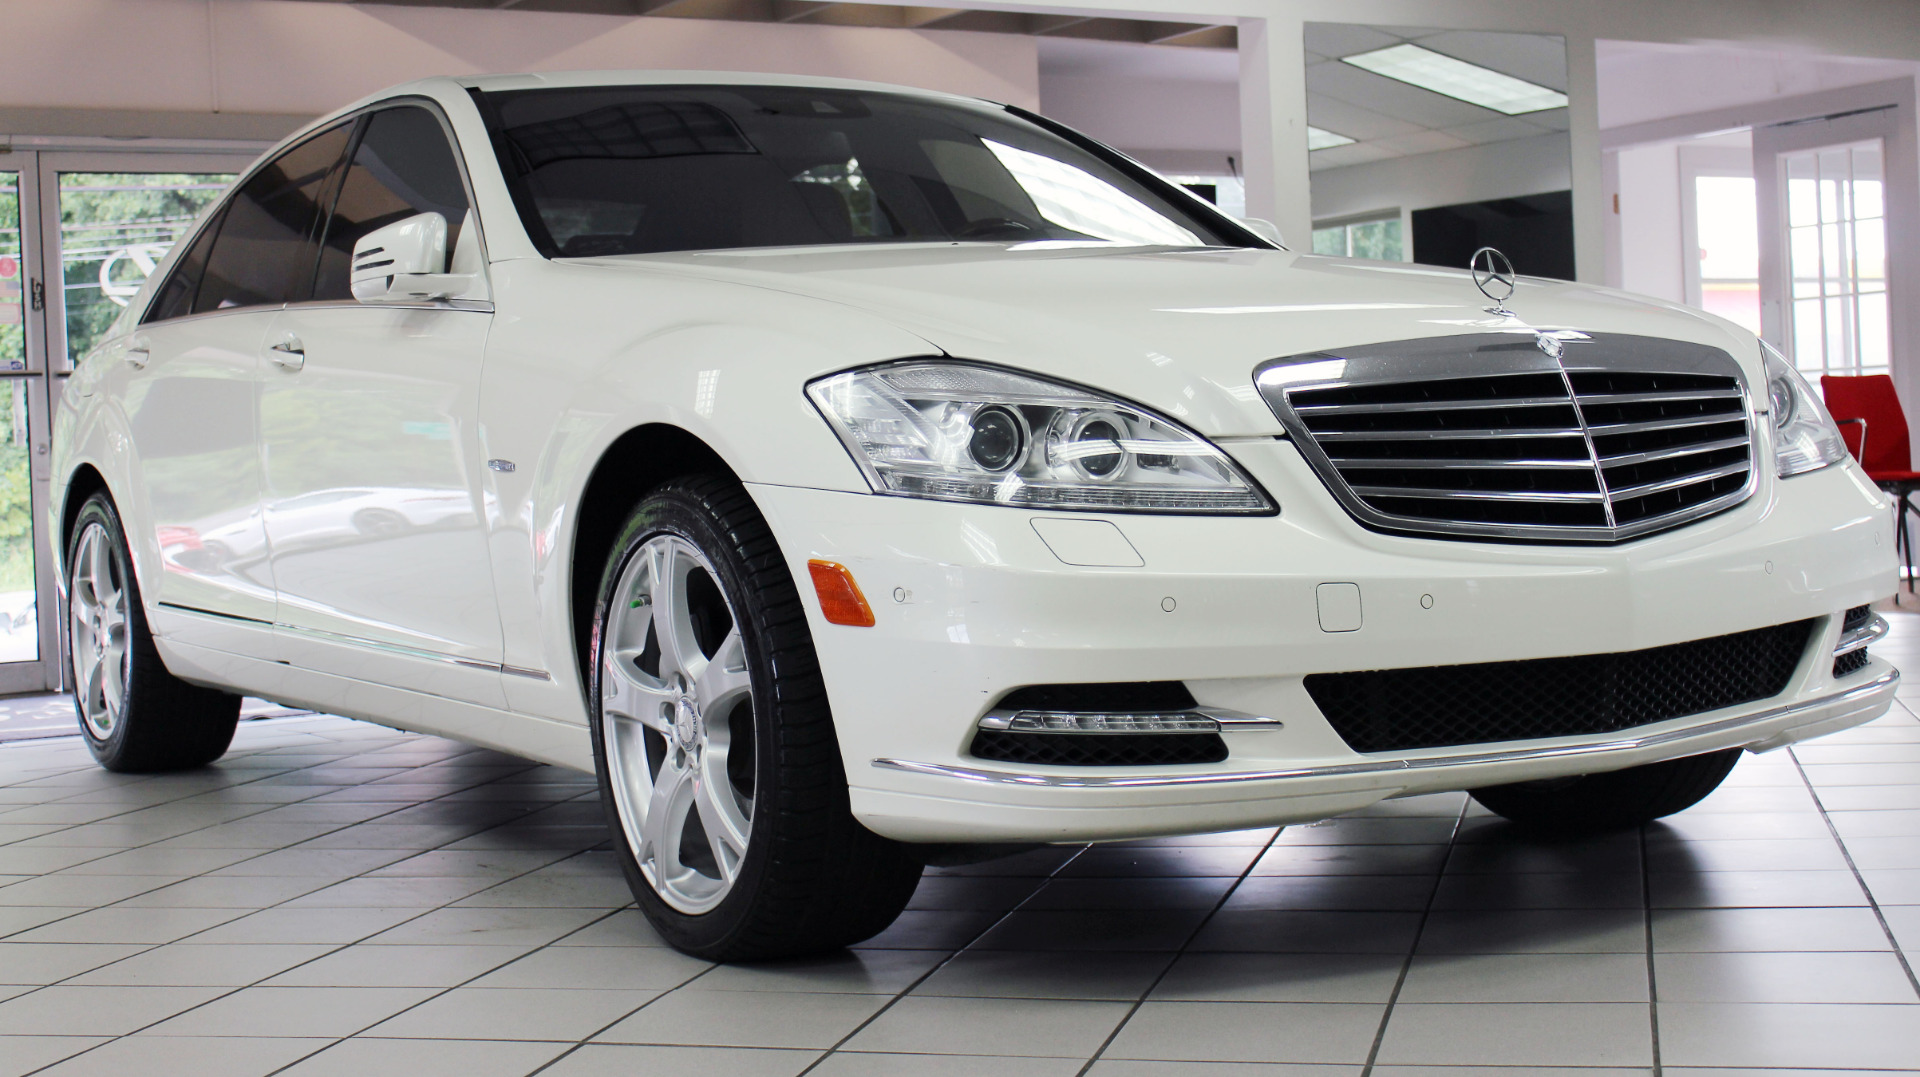 used 2012 mercedes benz s class s550 marietta ga. Black Bedroom Furniture Sets. Home Design Ideas